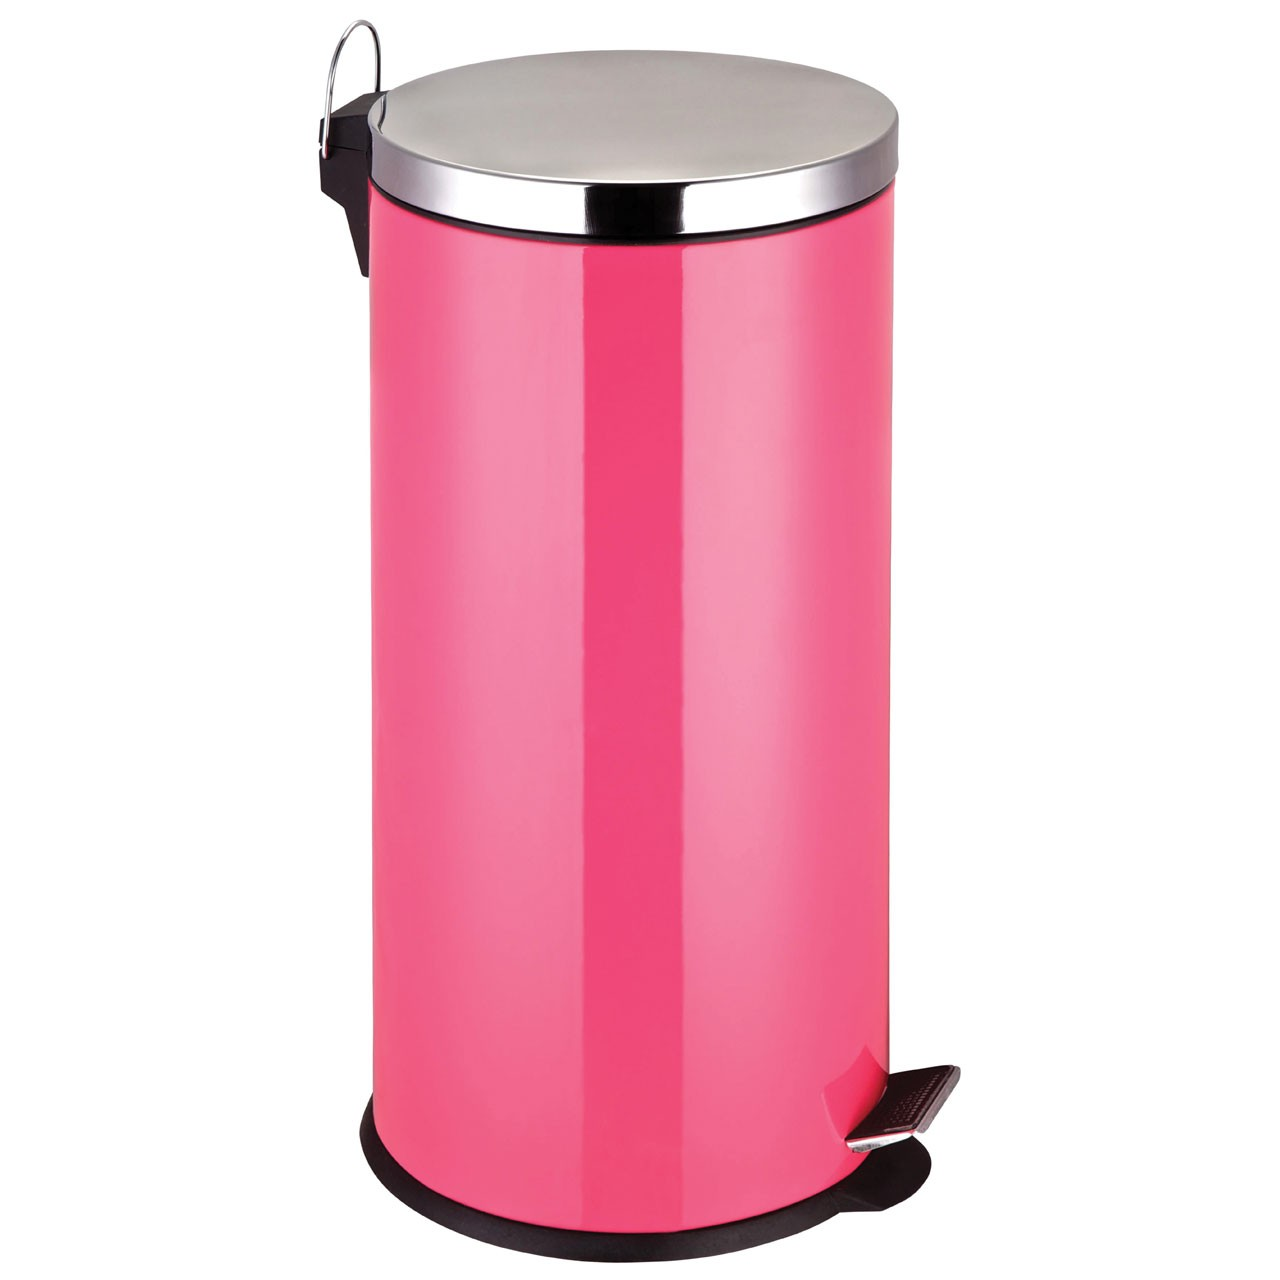 30 L Stainless Steel Pedal Bin - Hot Pink